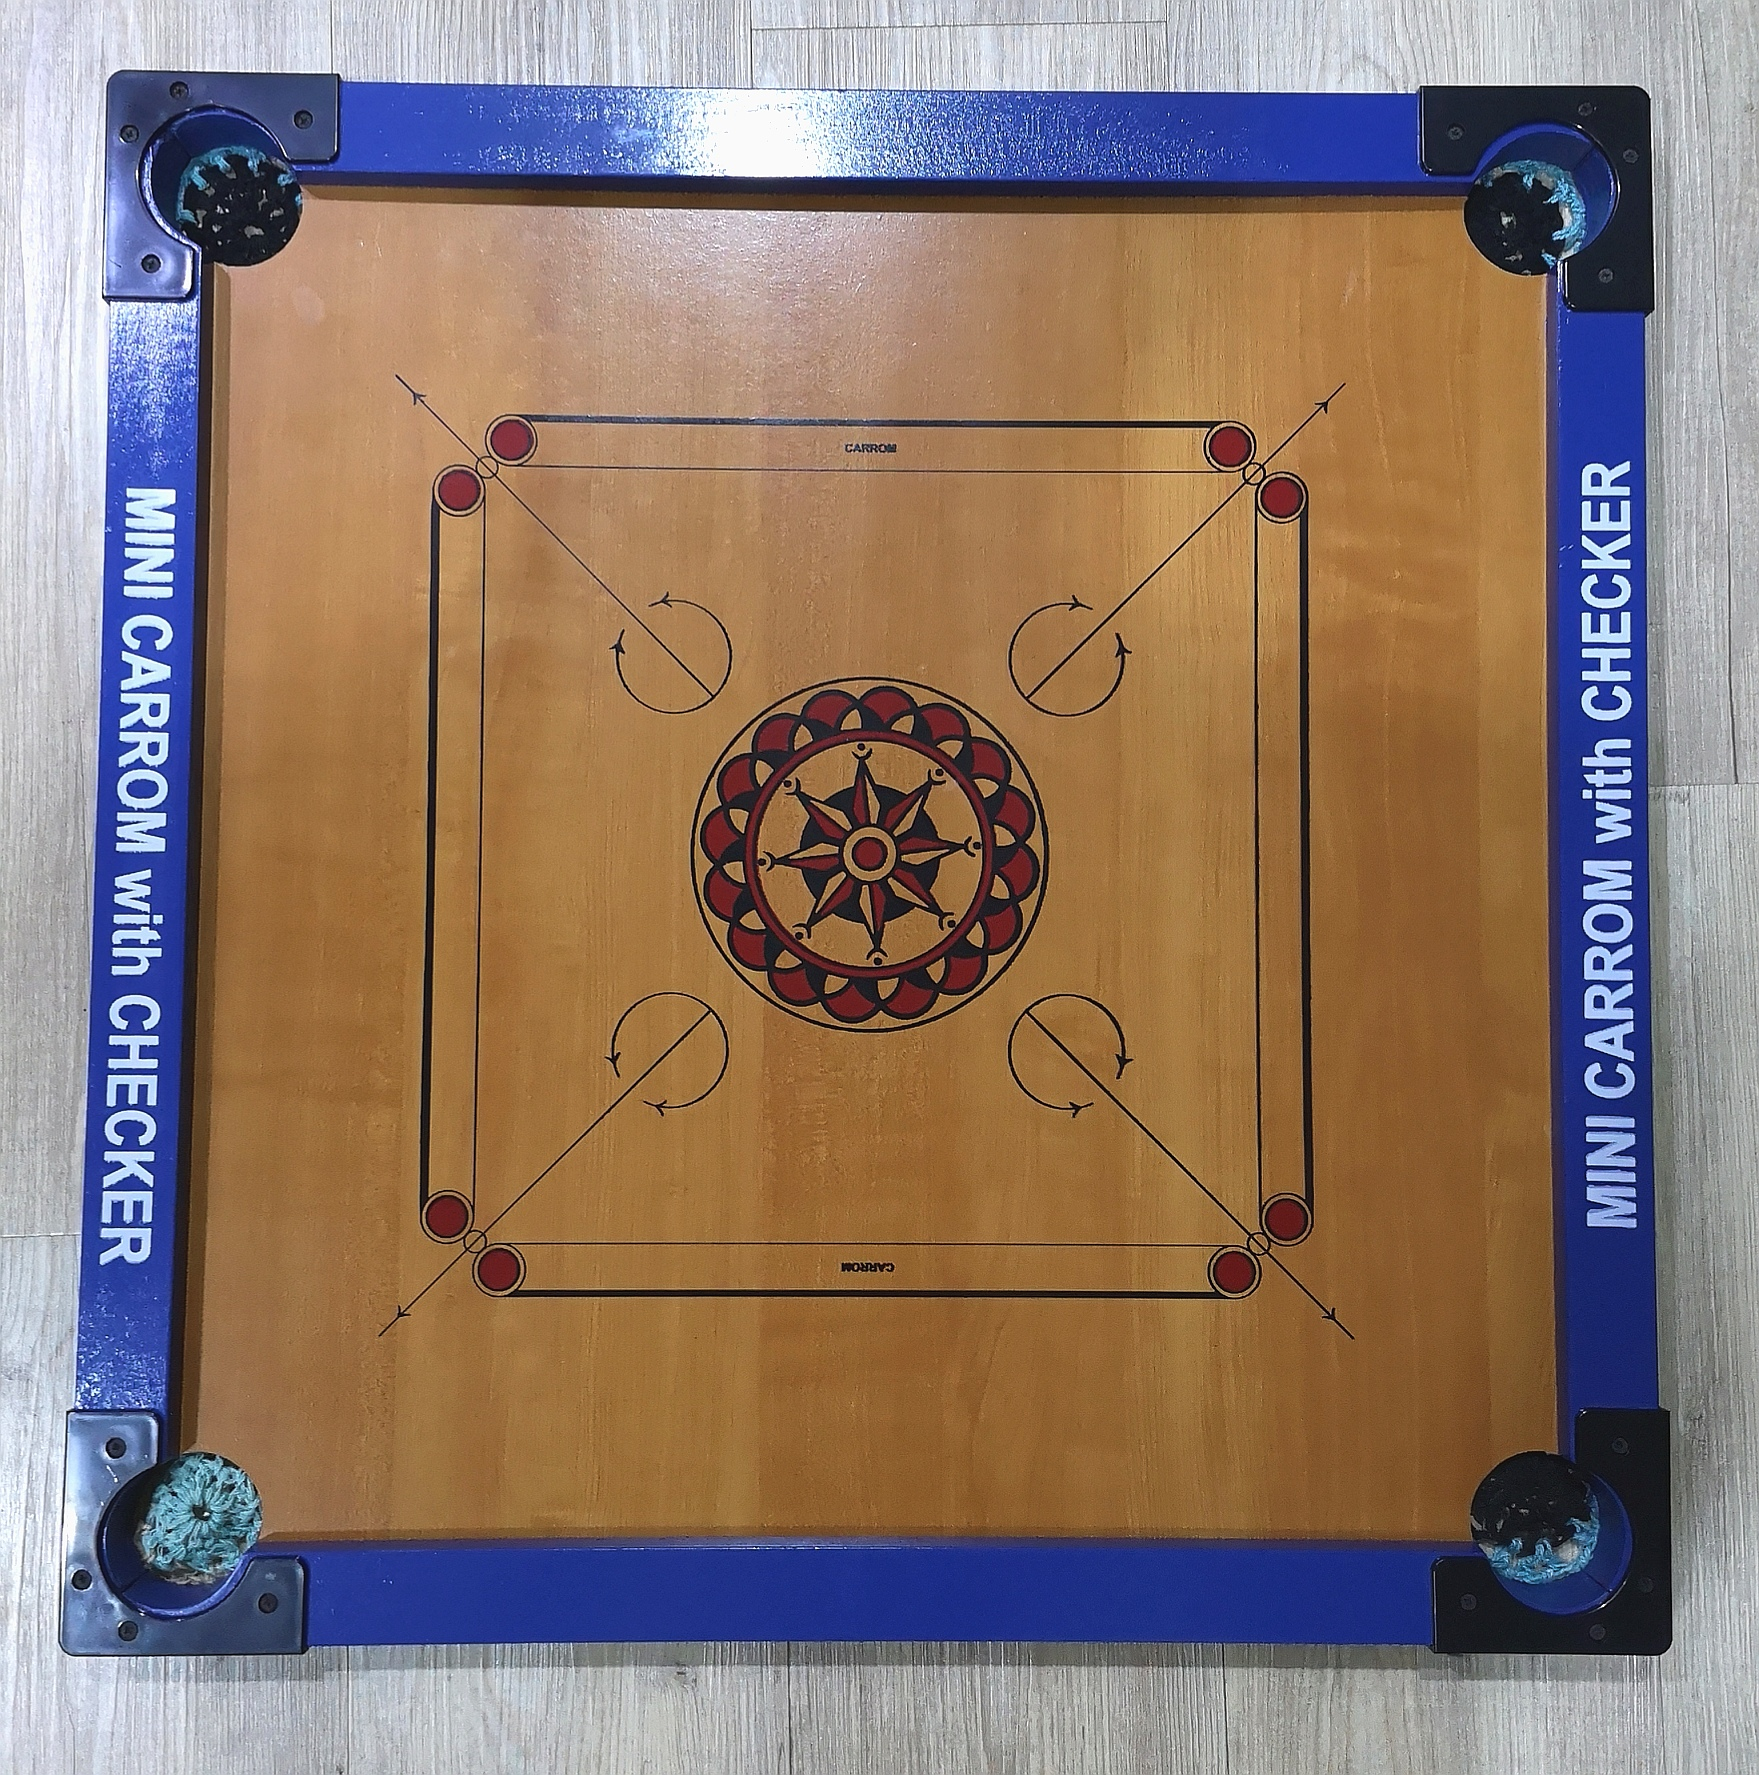 GC707 Mini Carrom with checker(2 Faces in 1 Boxes) (Size: 65.0 x 65.0 cm)